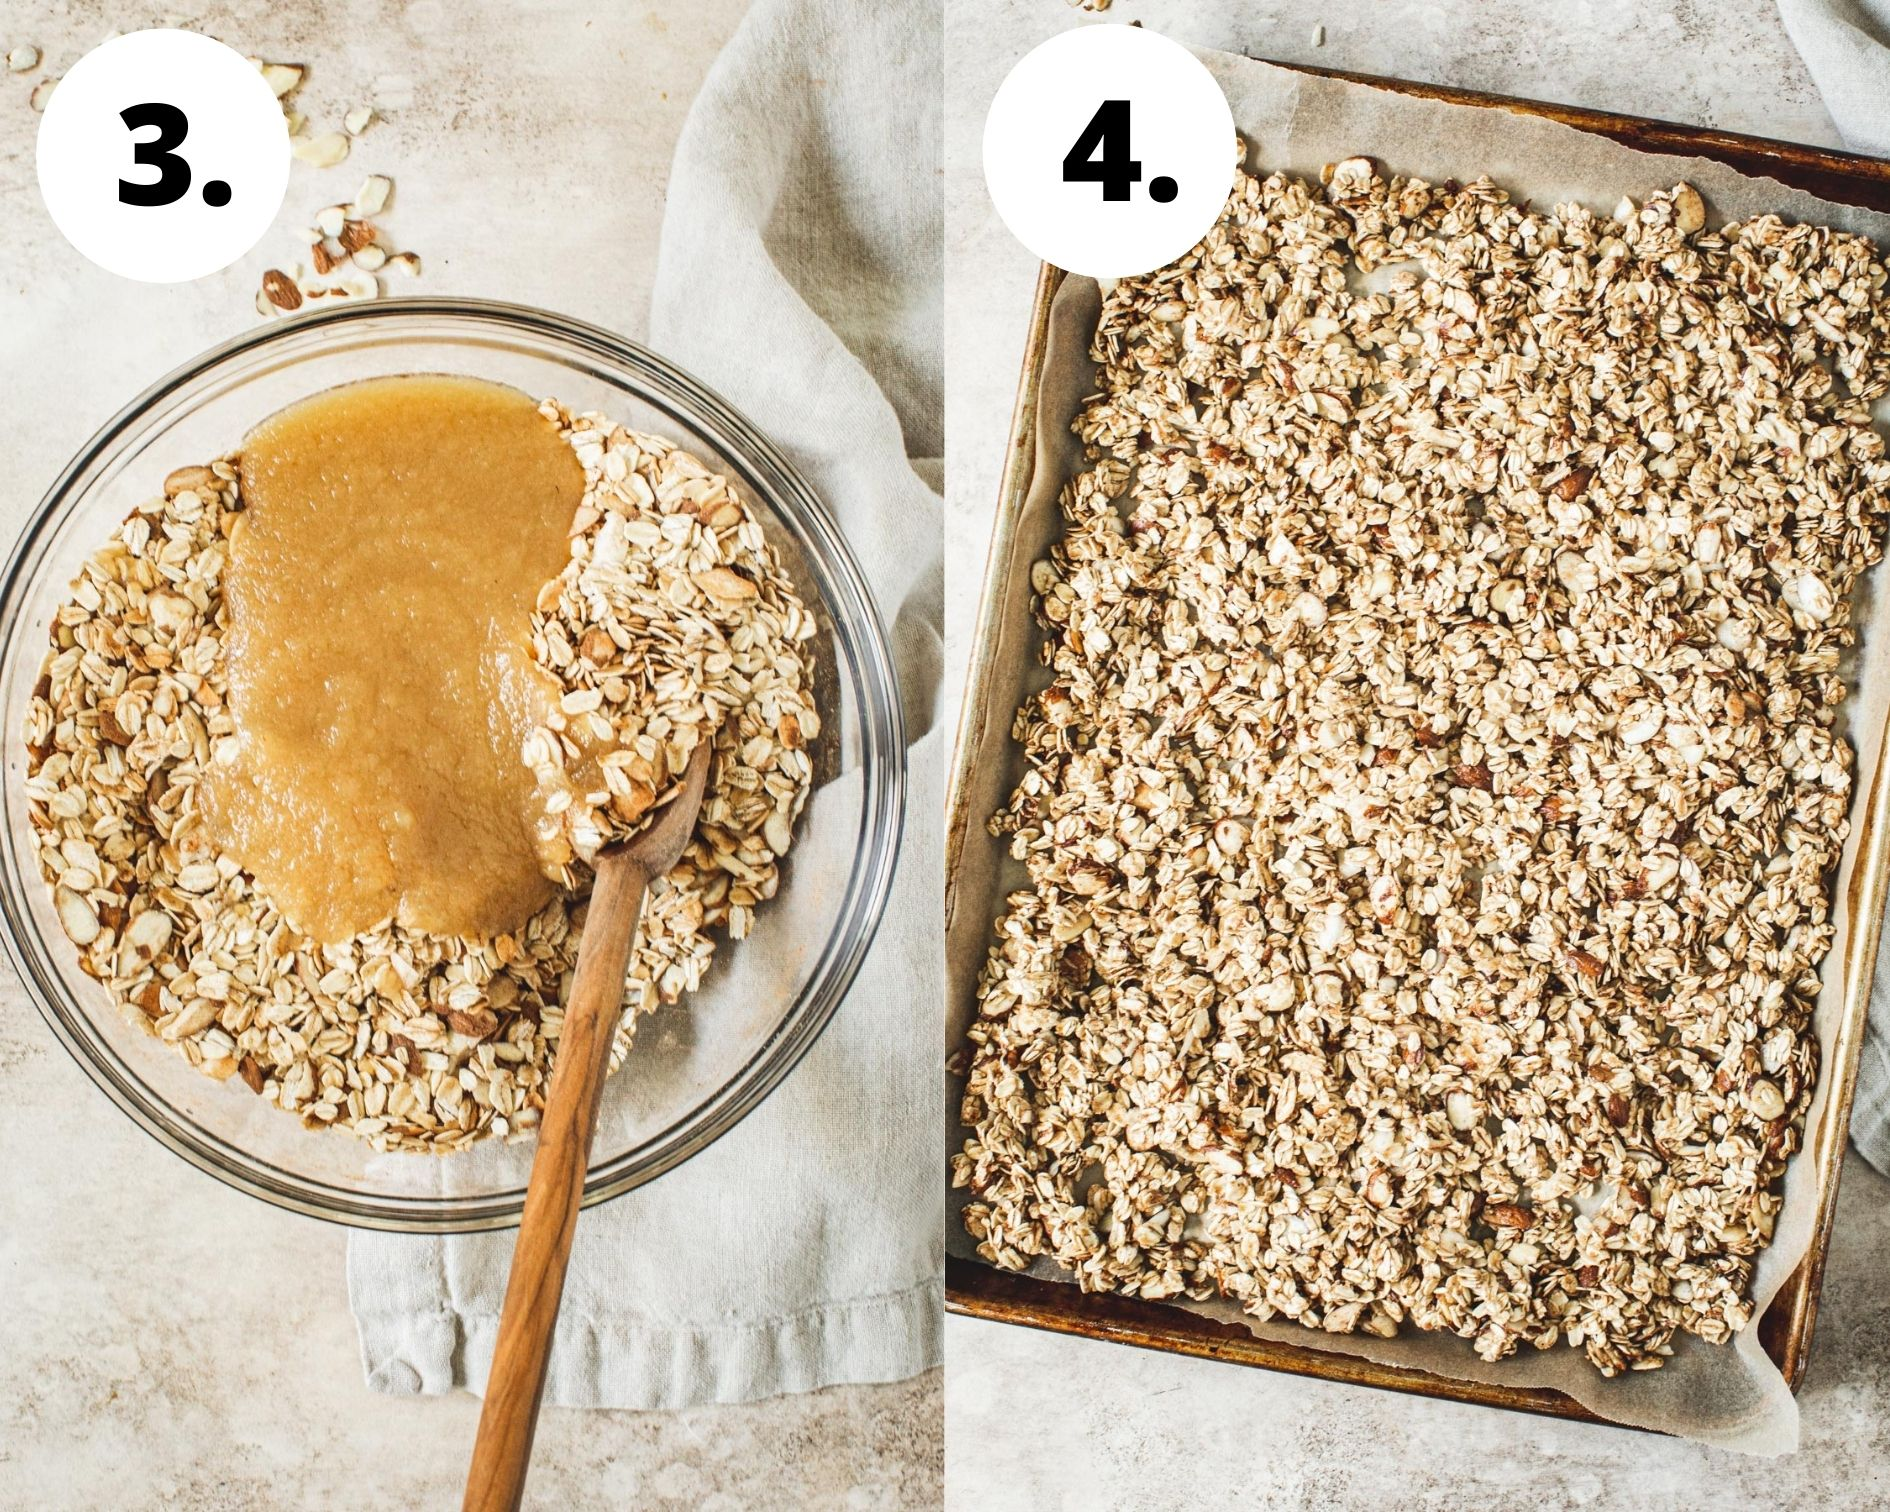 Process steps 3 and 4 for making honey granola.